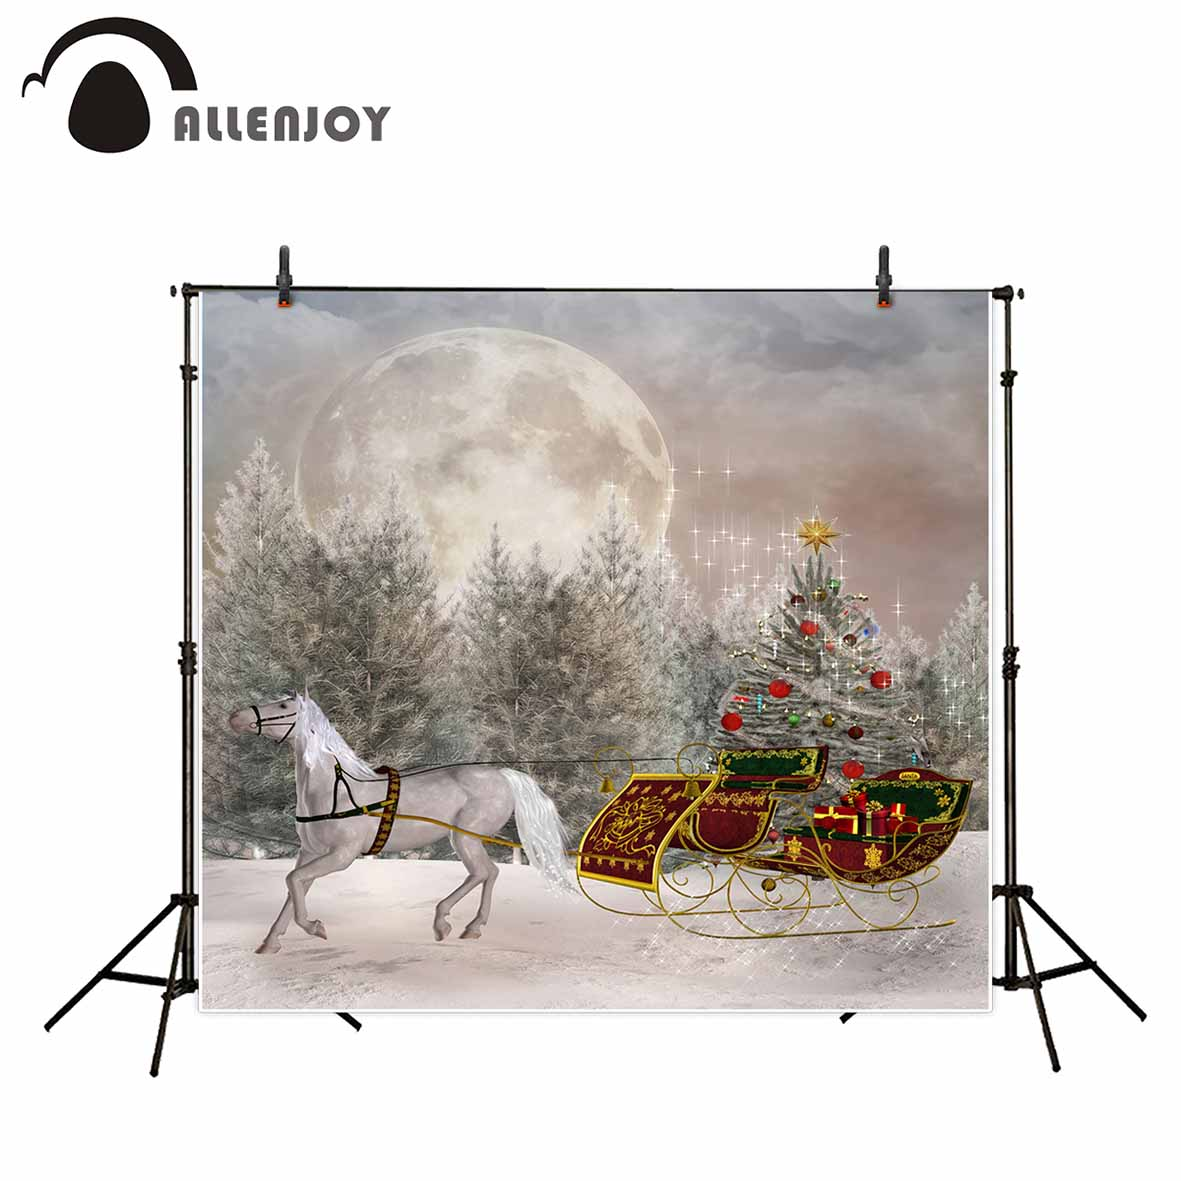 Allenjoy photography background Snow Horse Moon Sled Pine Christmas winter backdrop photo background studio camera fotografica allenjoy photography background moon castle witch bat pumpkin halloween theme backdrop photo studio camera fotografica